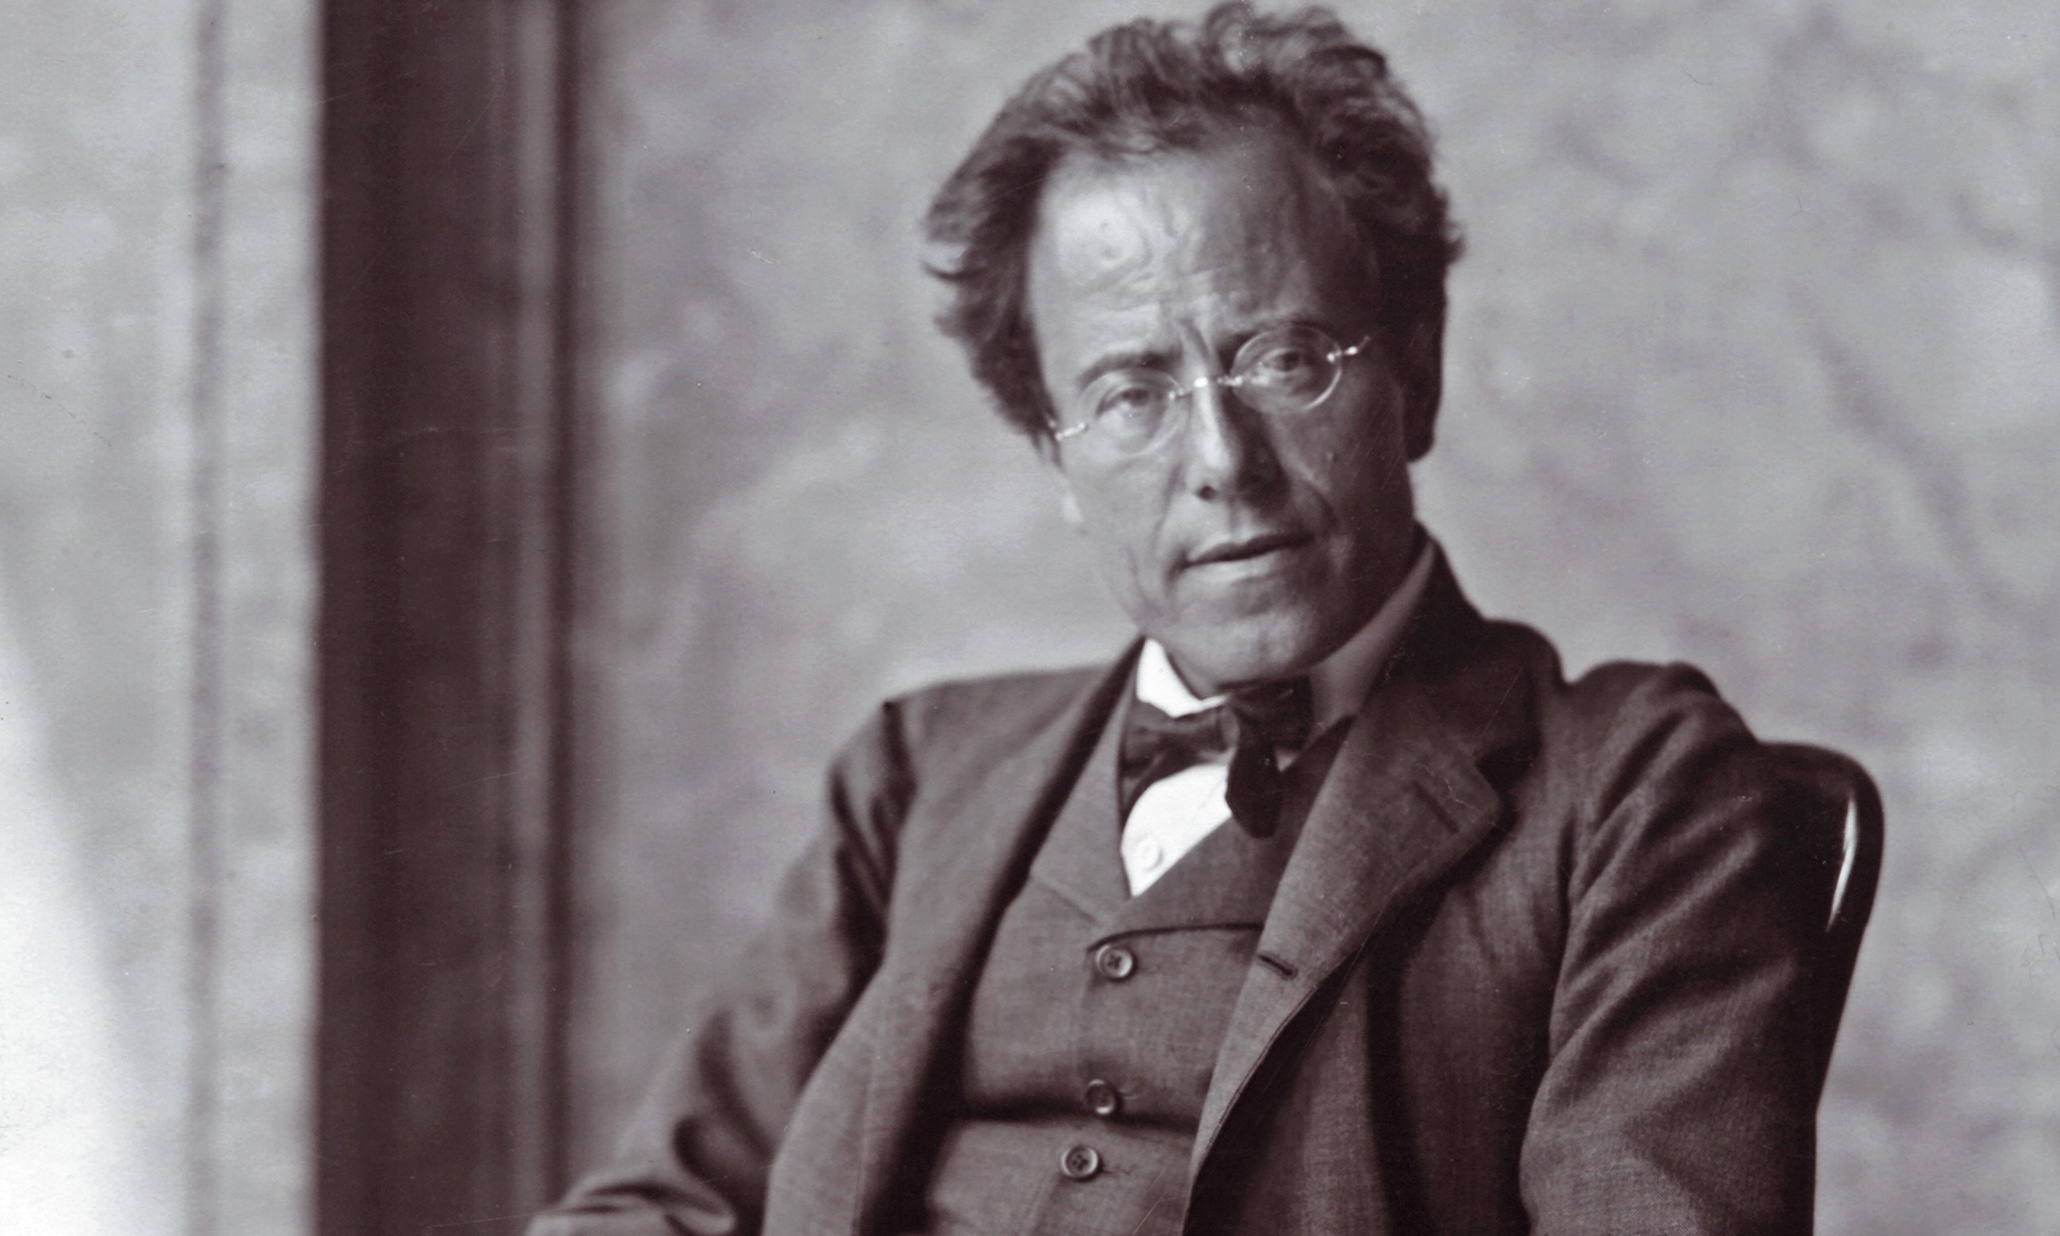 The Austrian composer Gustav Mahler. Photograph by Moriz Nähr. 1907.